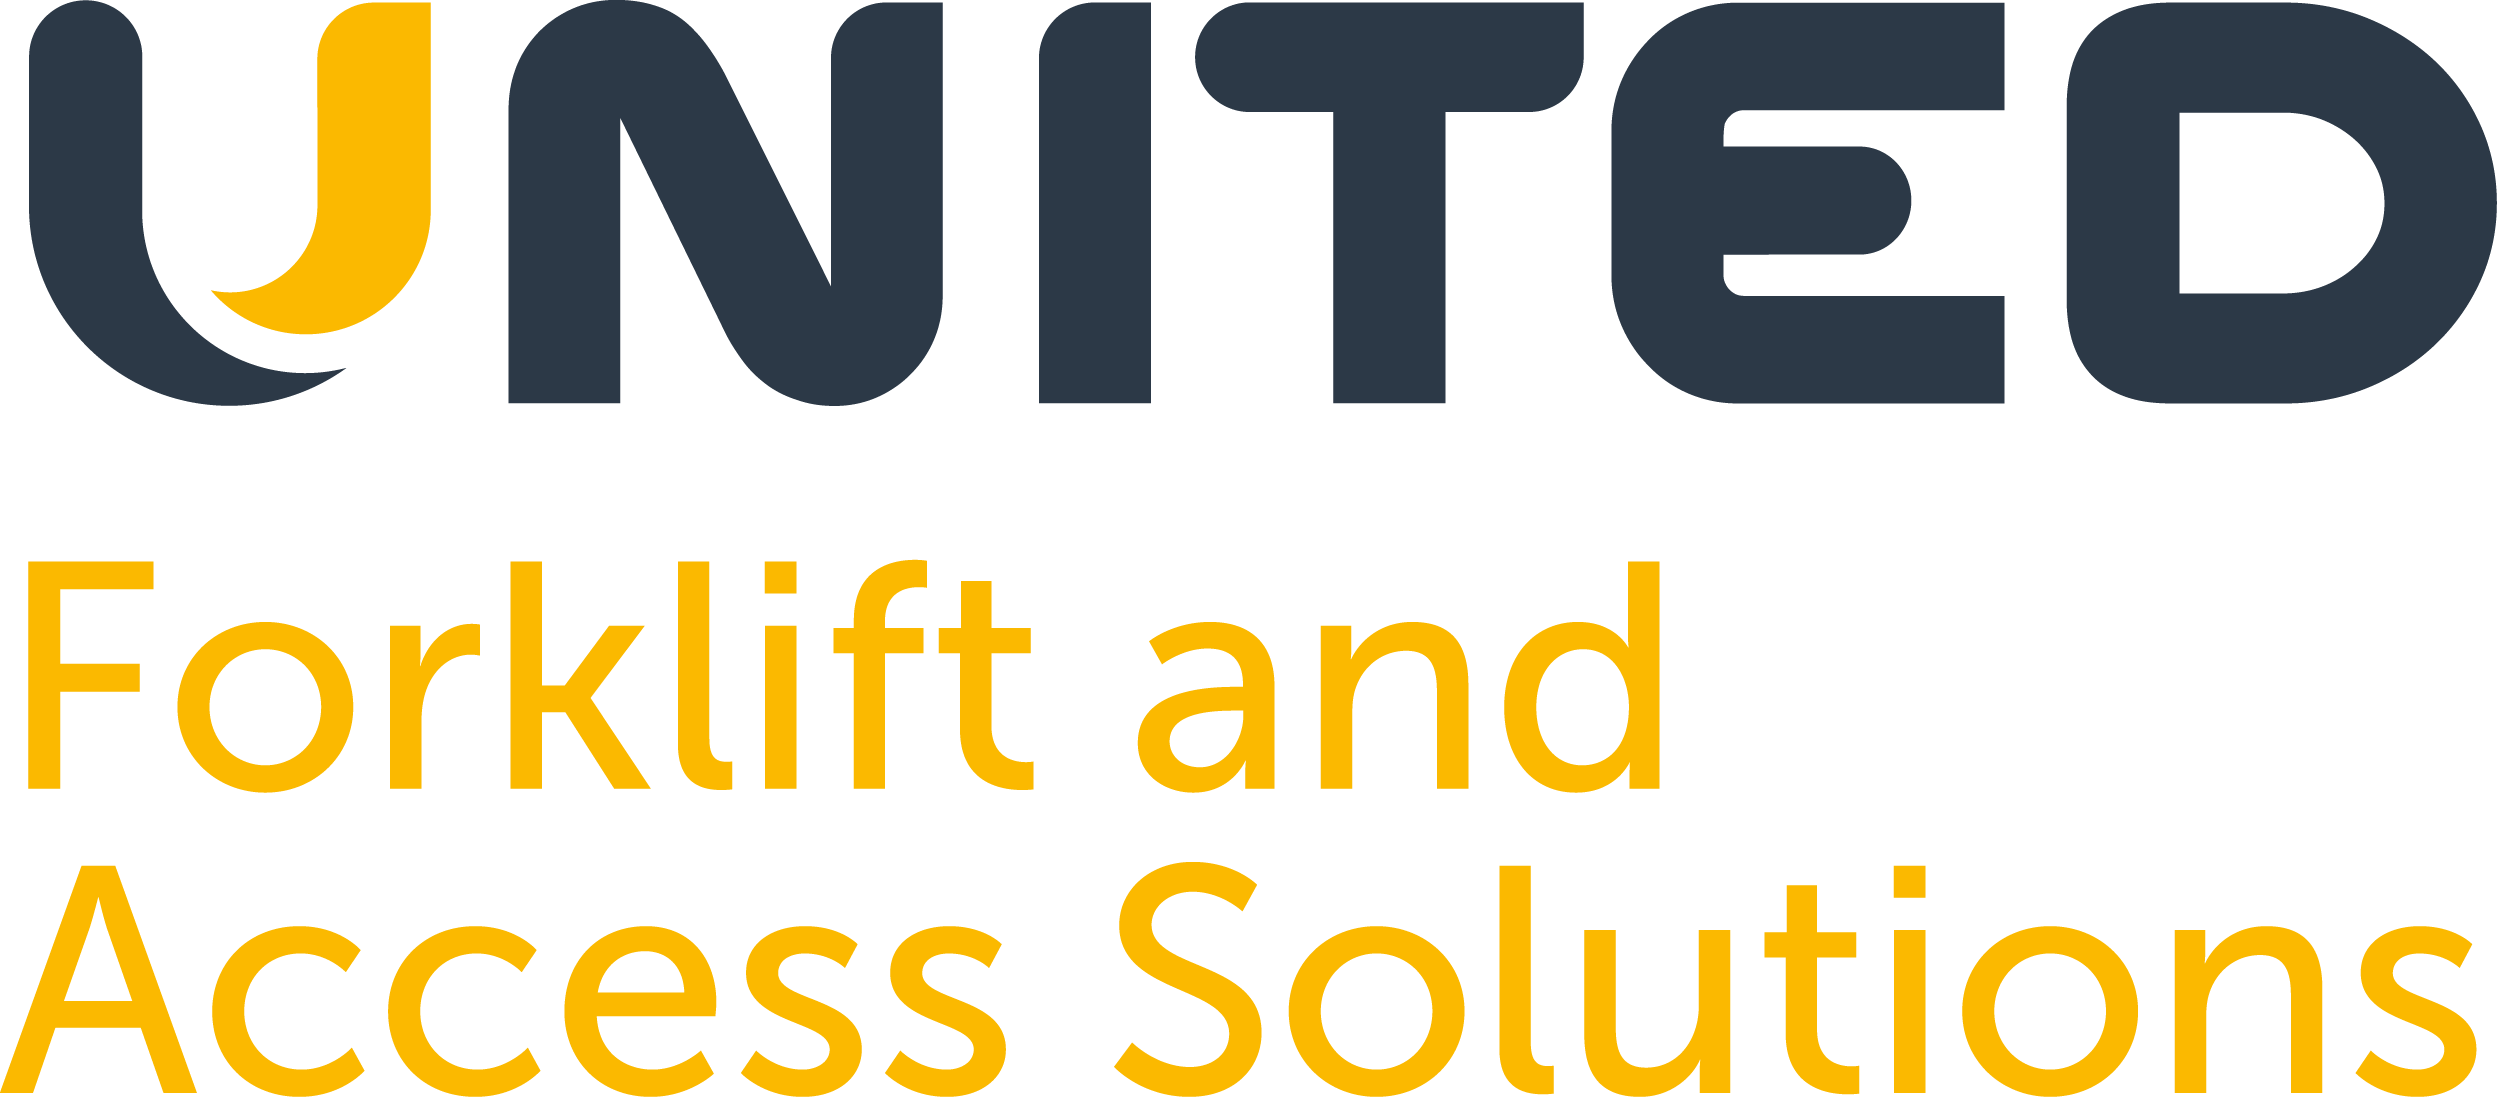 United Forklift and Access Solutions 002